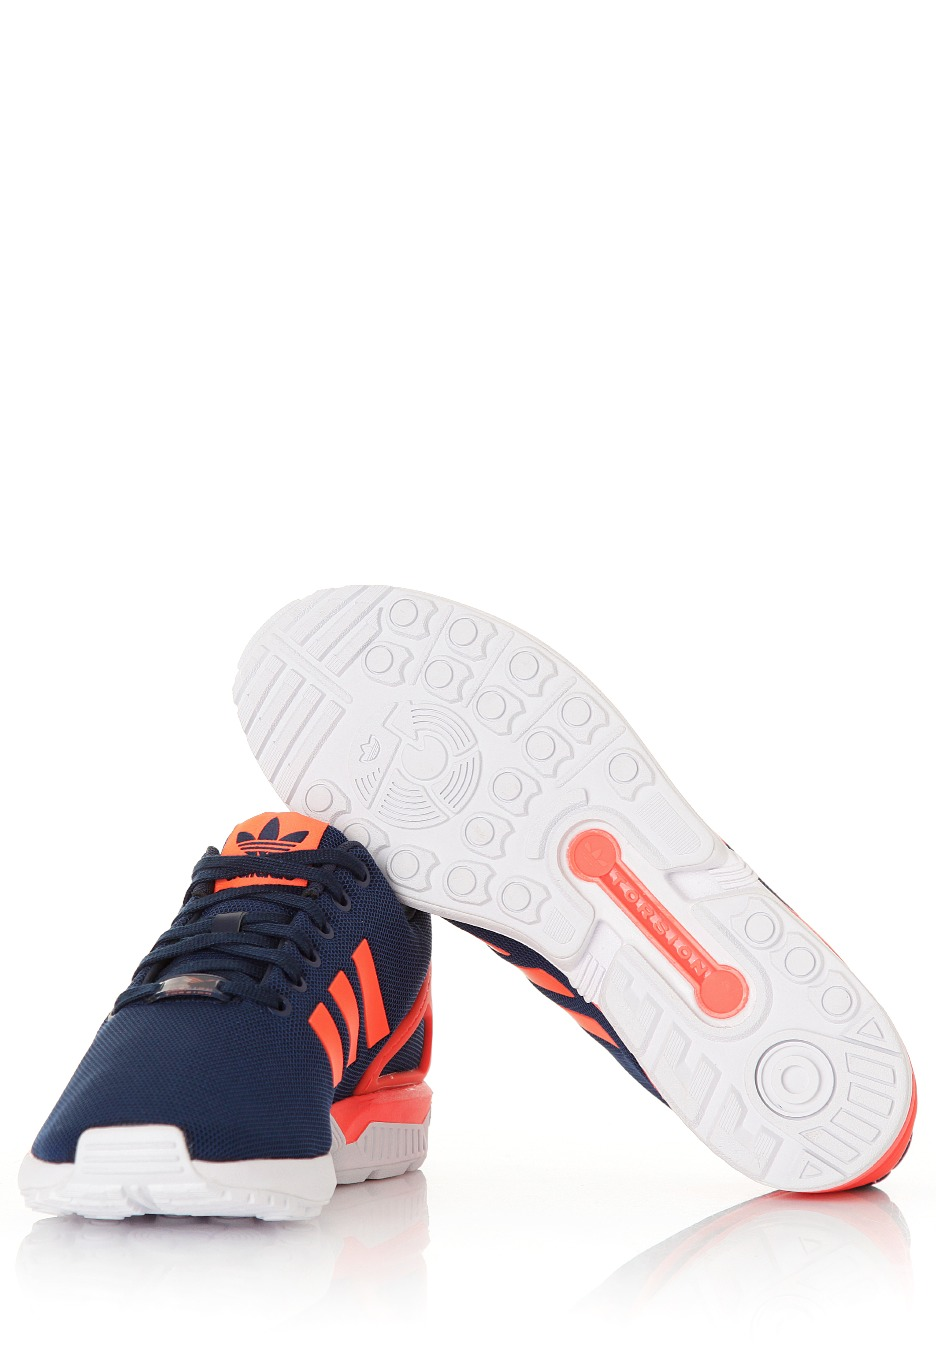 separation shoes 5b40d 2aad0 top quality click esc to close the window. adidas zx flux new navy infrared  running